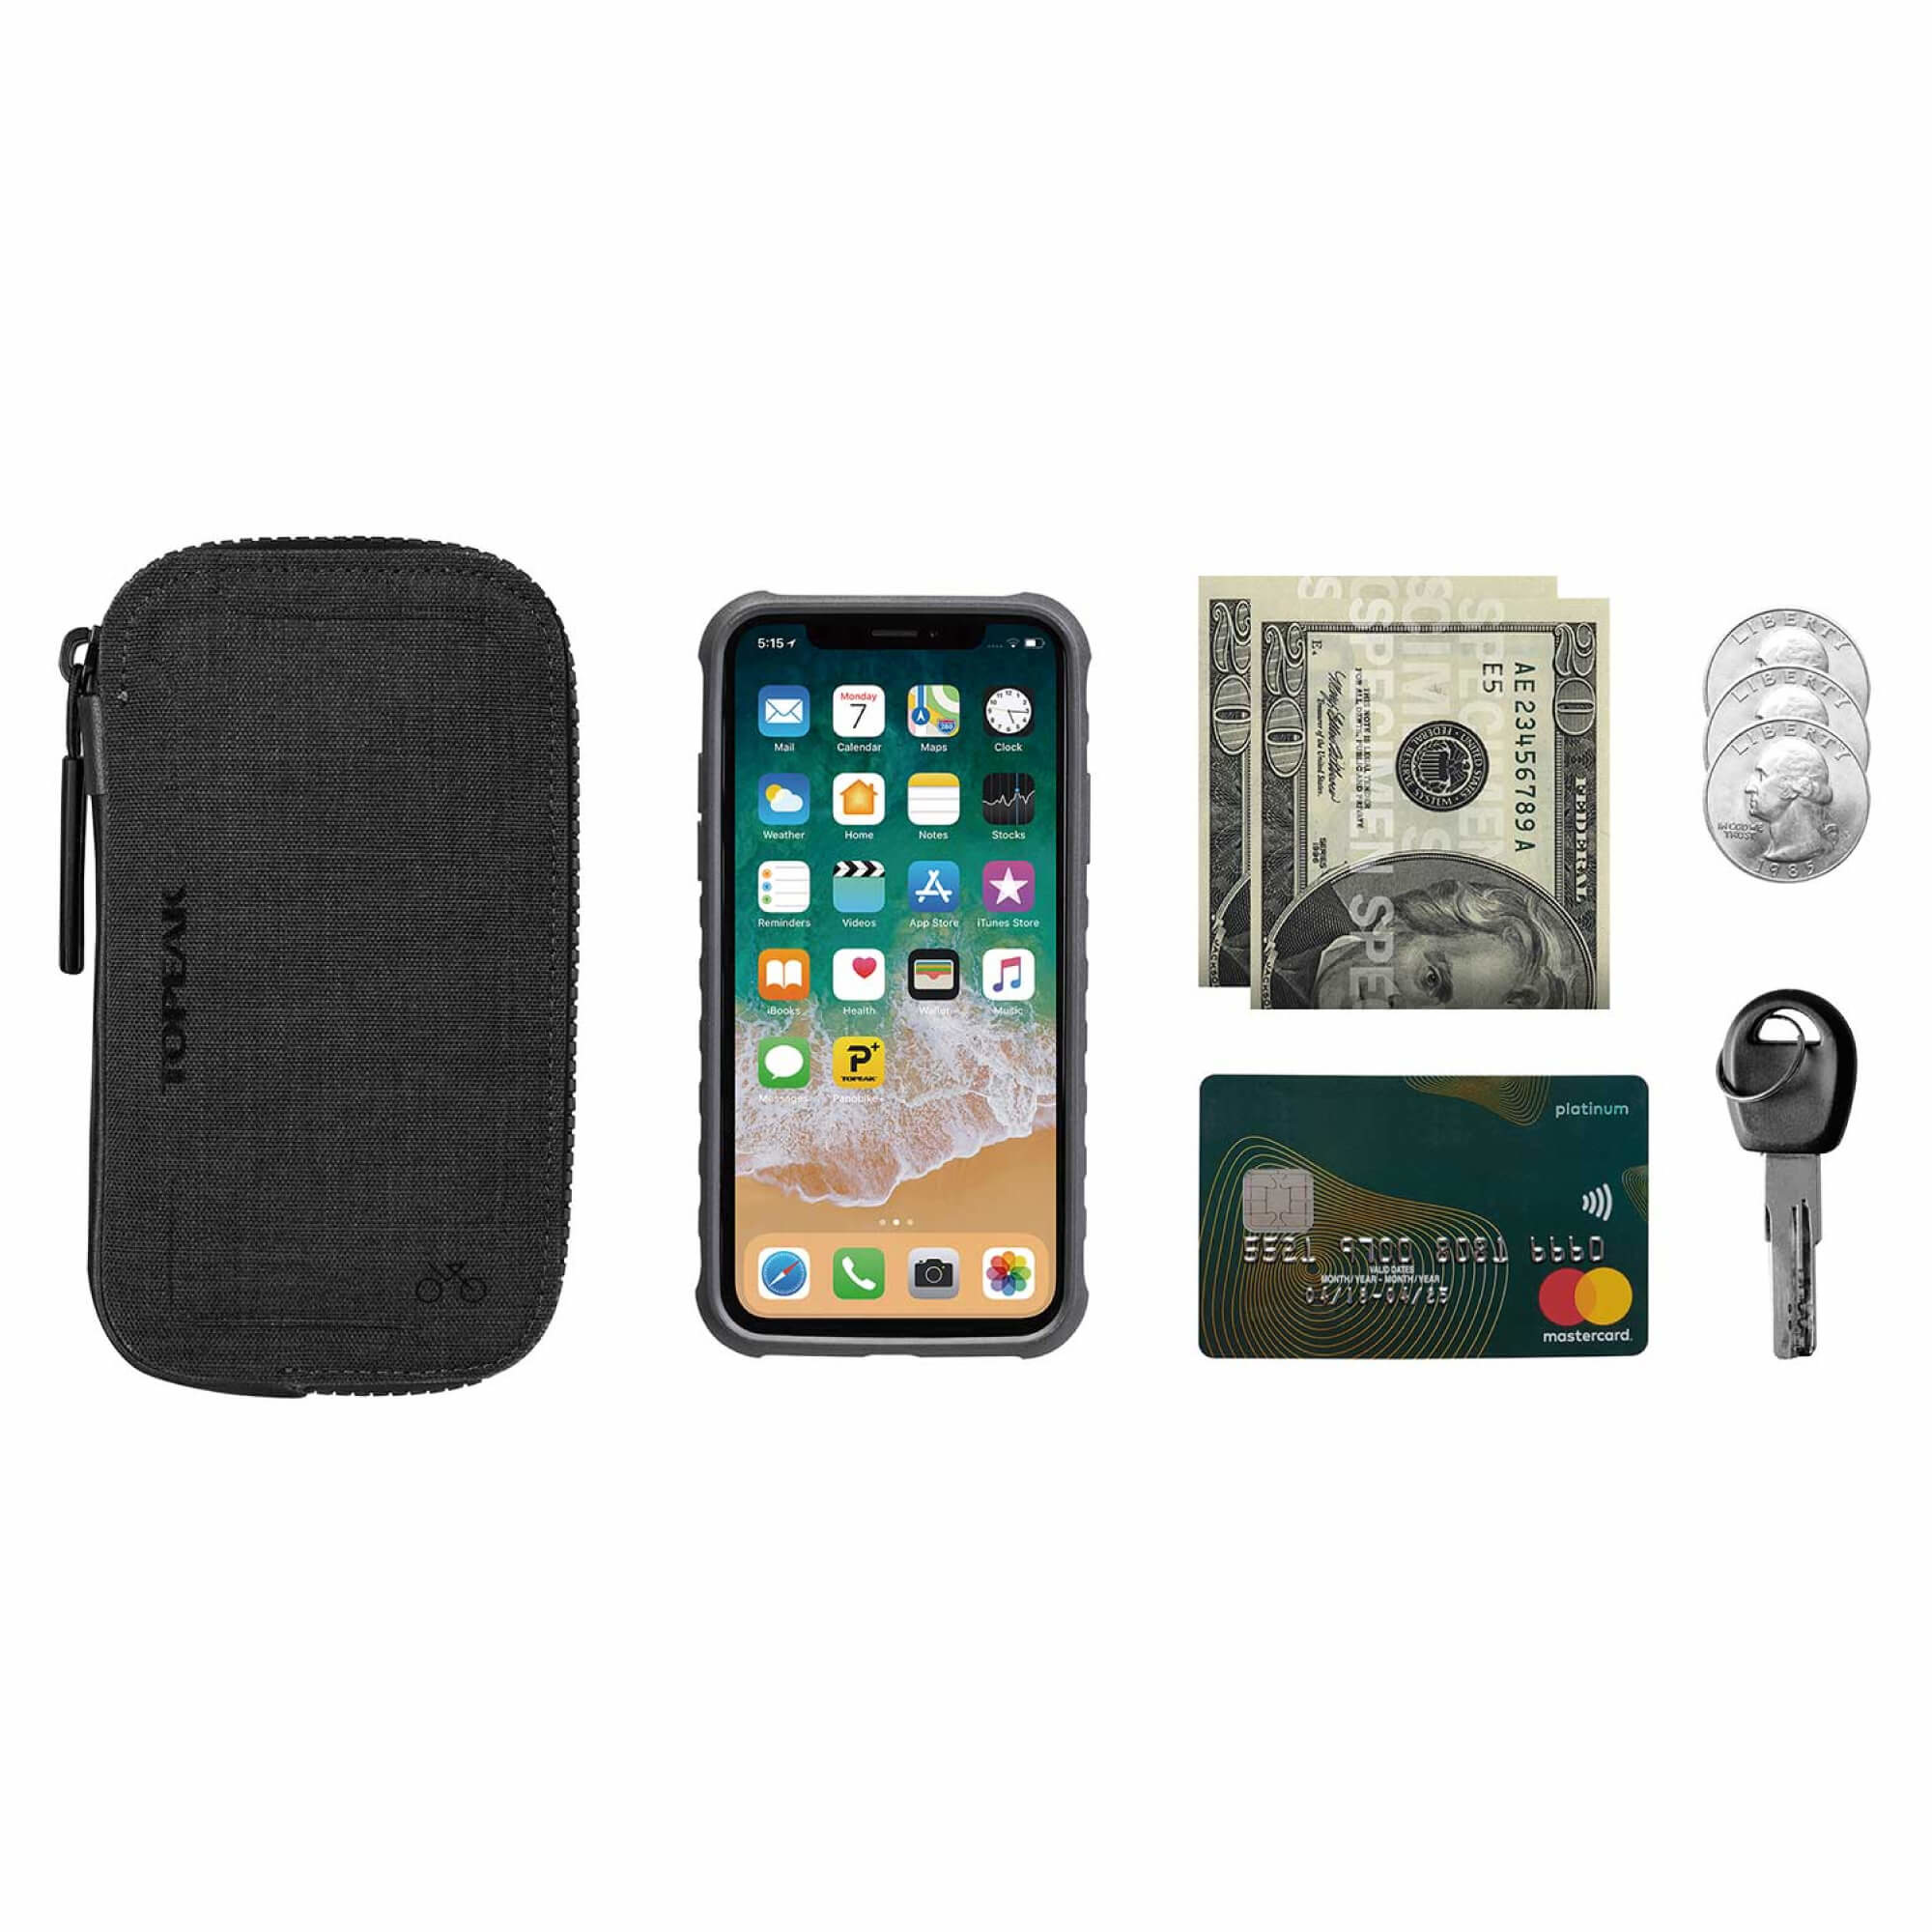 "Cycling Wallet 4.7"", Black-5"